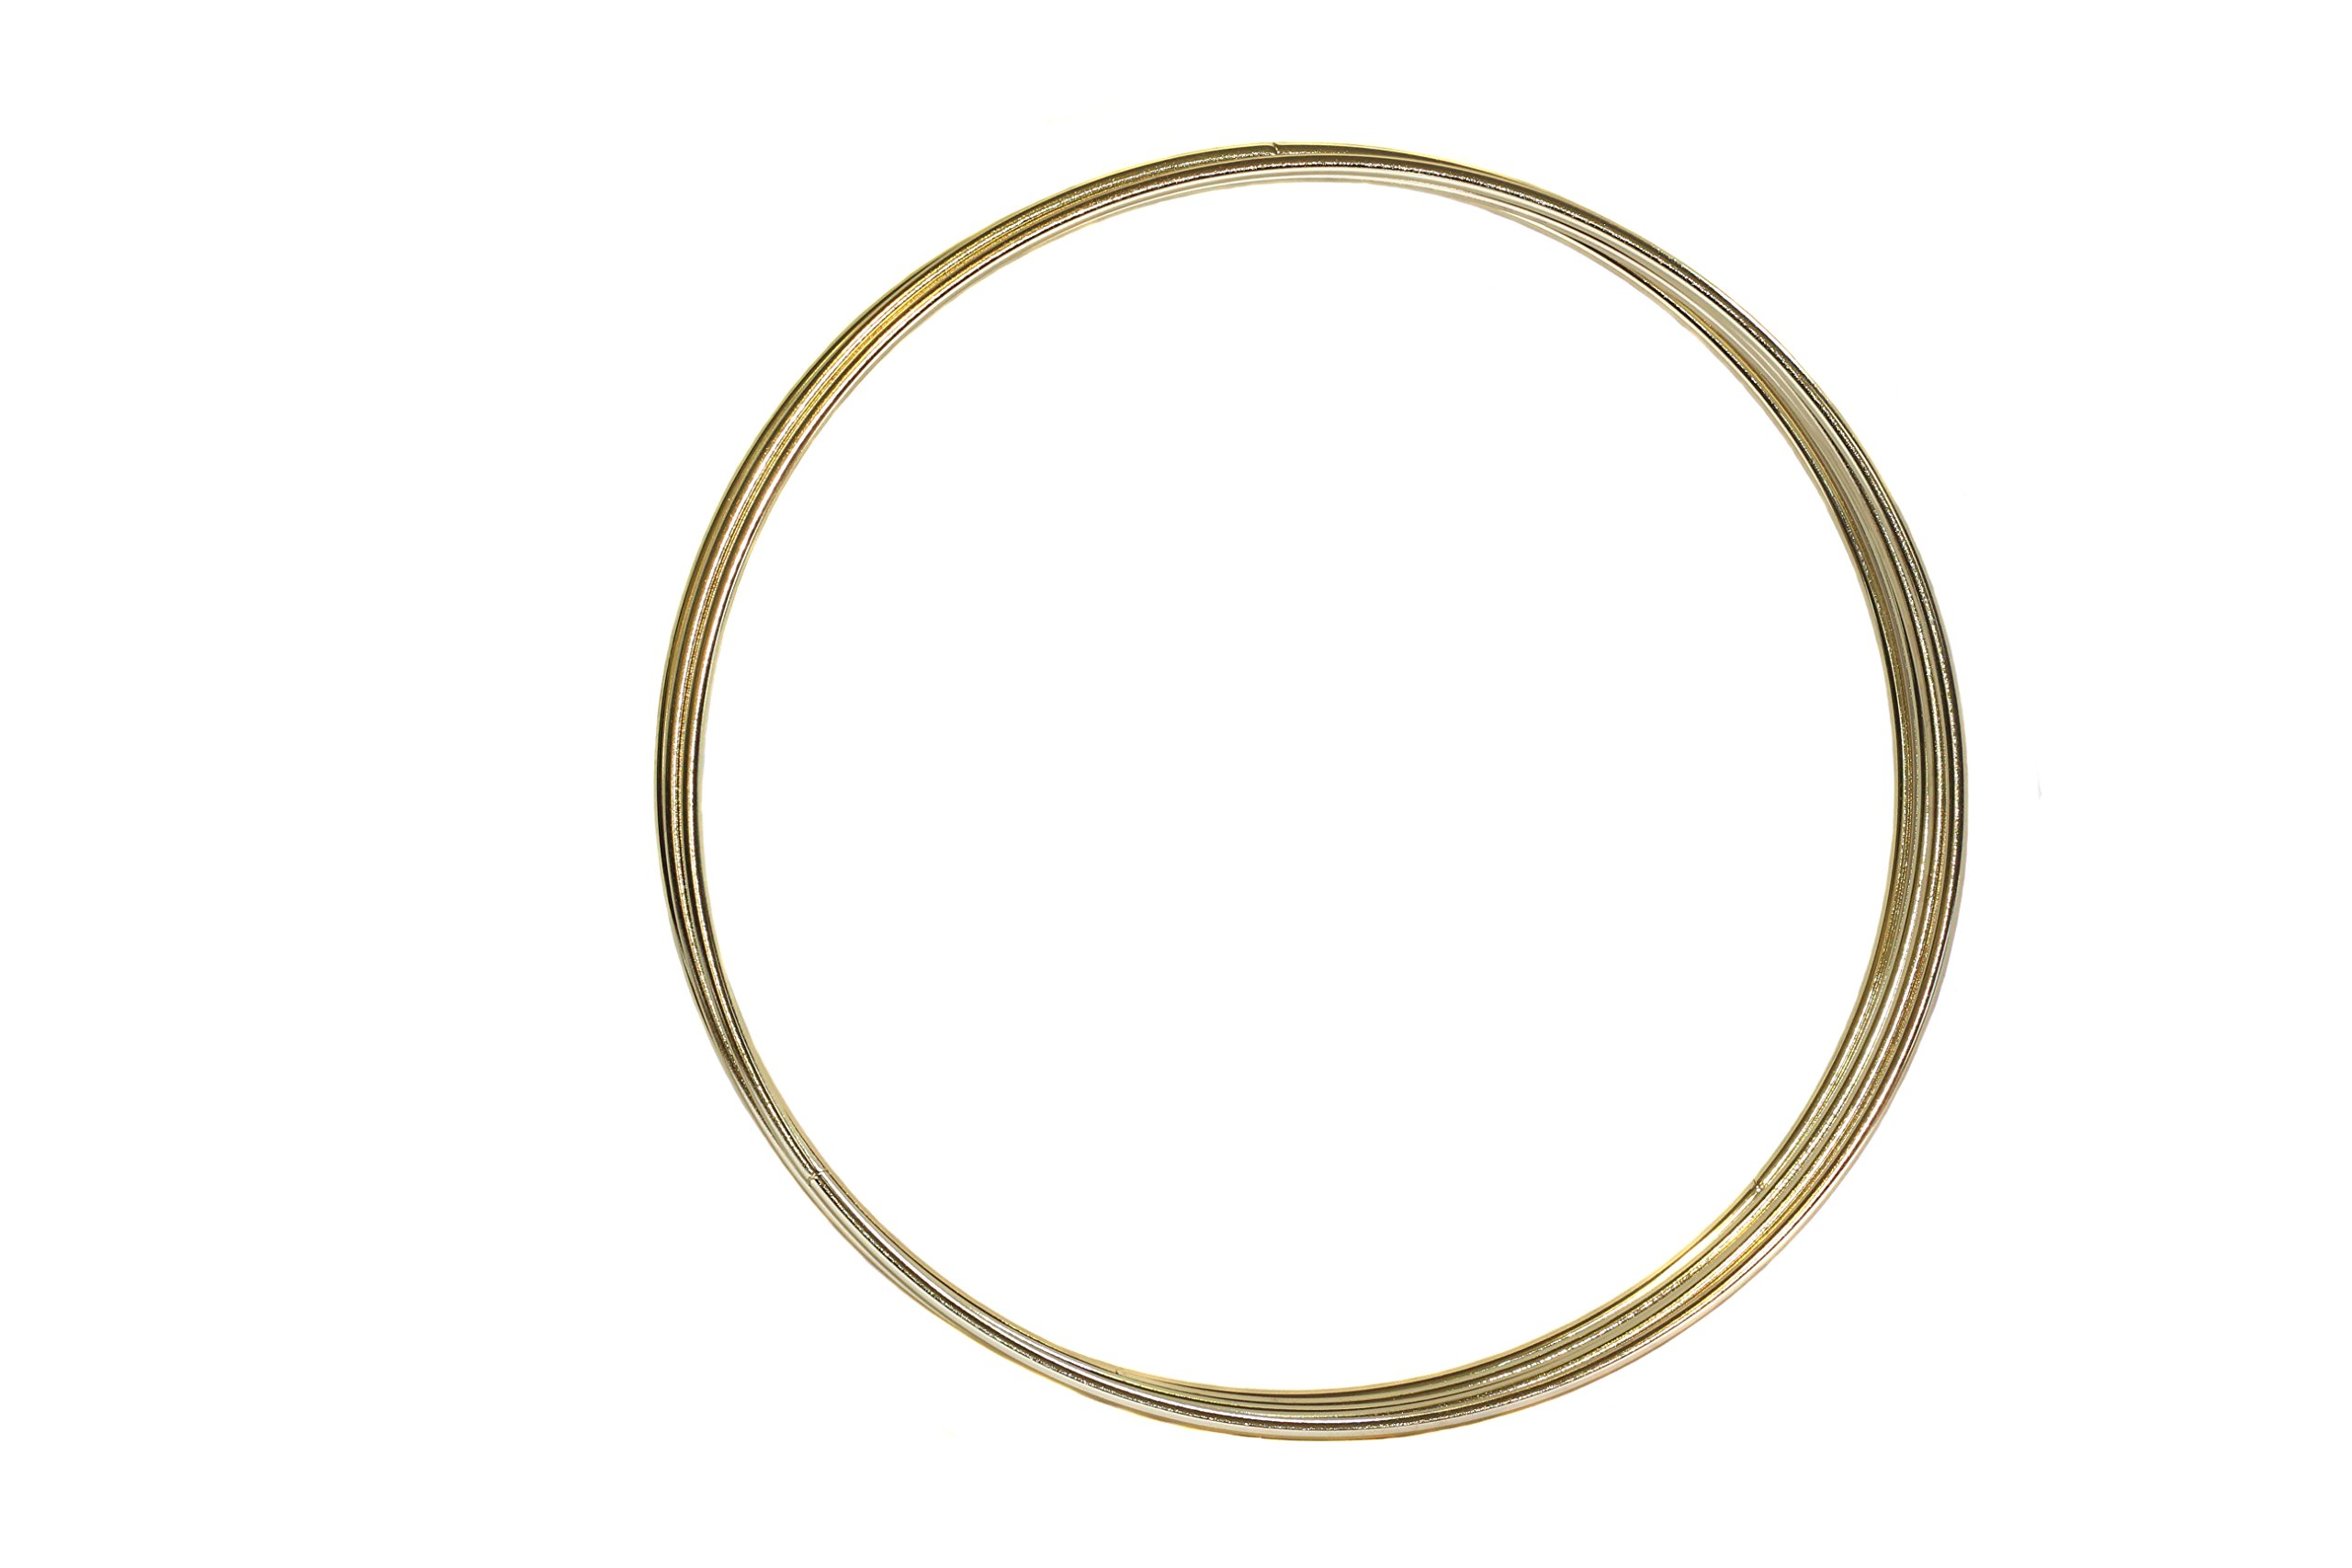 Bistore - Bulk Buy - Macrame Metal Hoops for Dream Catchers and Other DIY Craft Projects (50pcs 10-inch gold hoops, Gold)